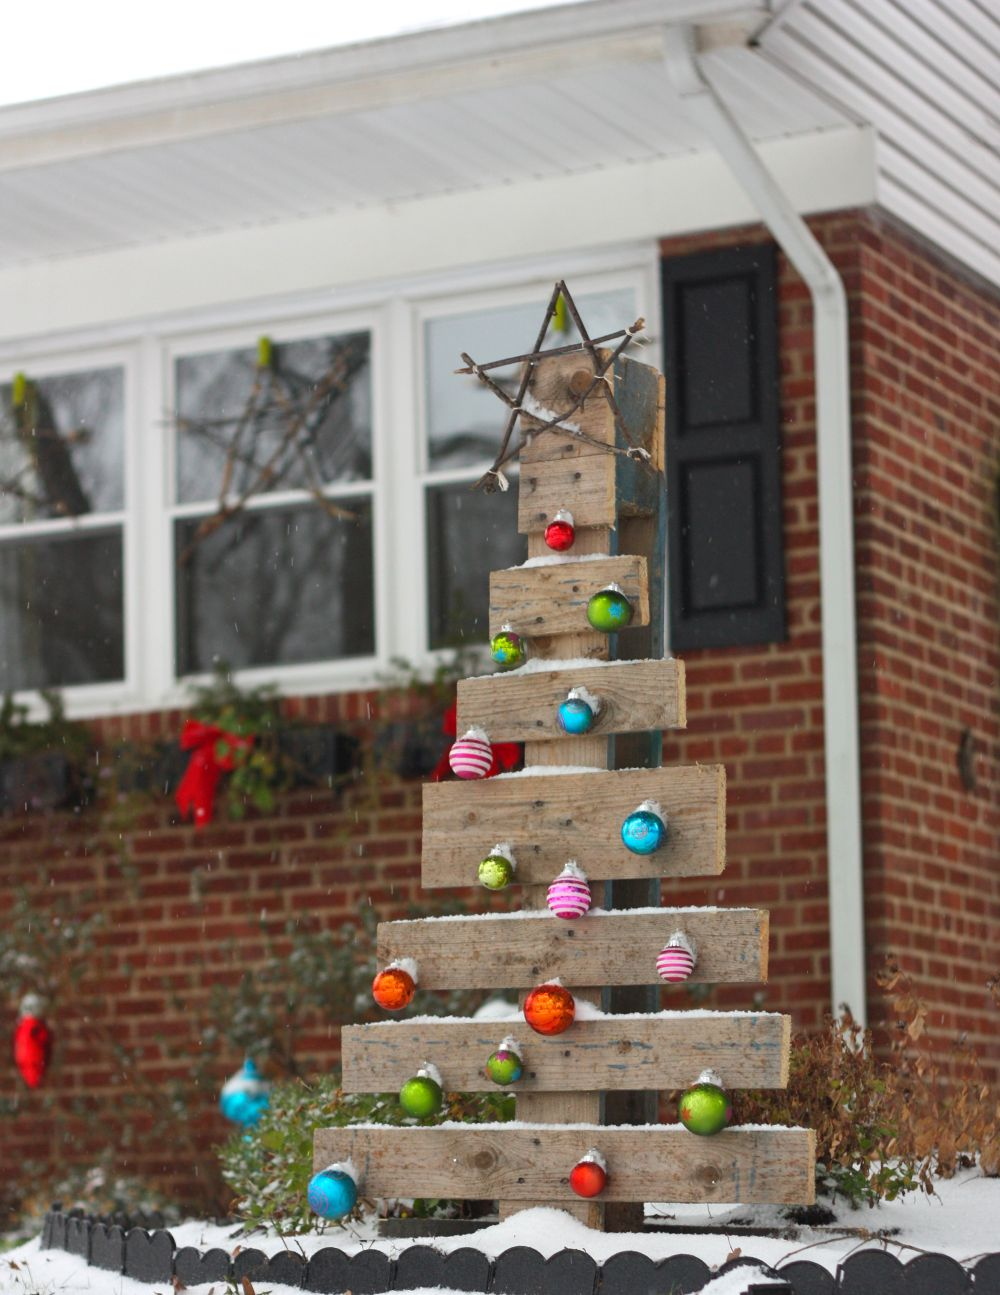 view in gallery - Christmas Yard Decorations